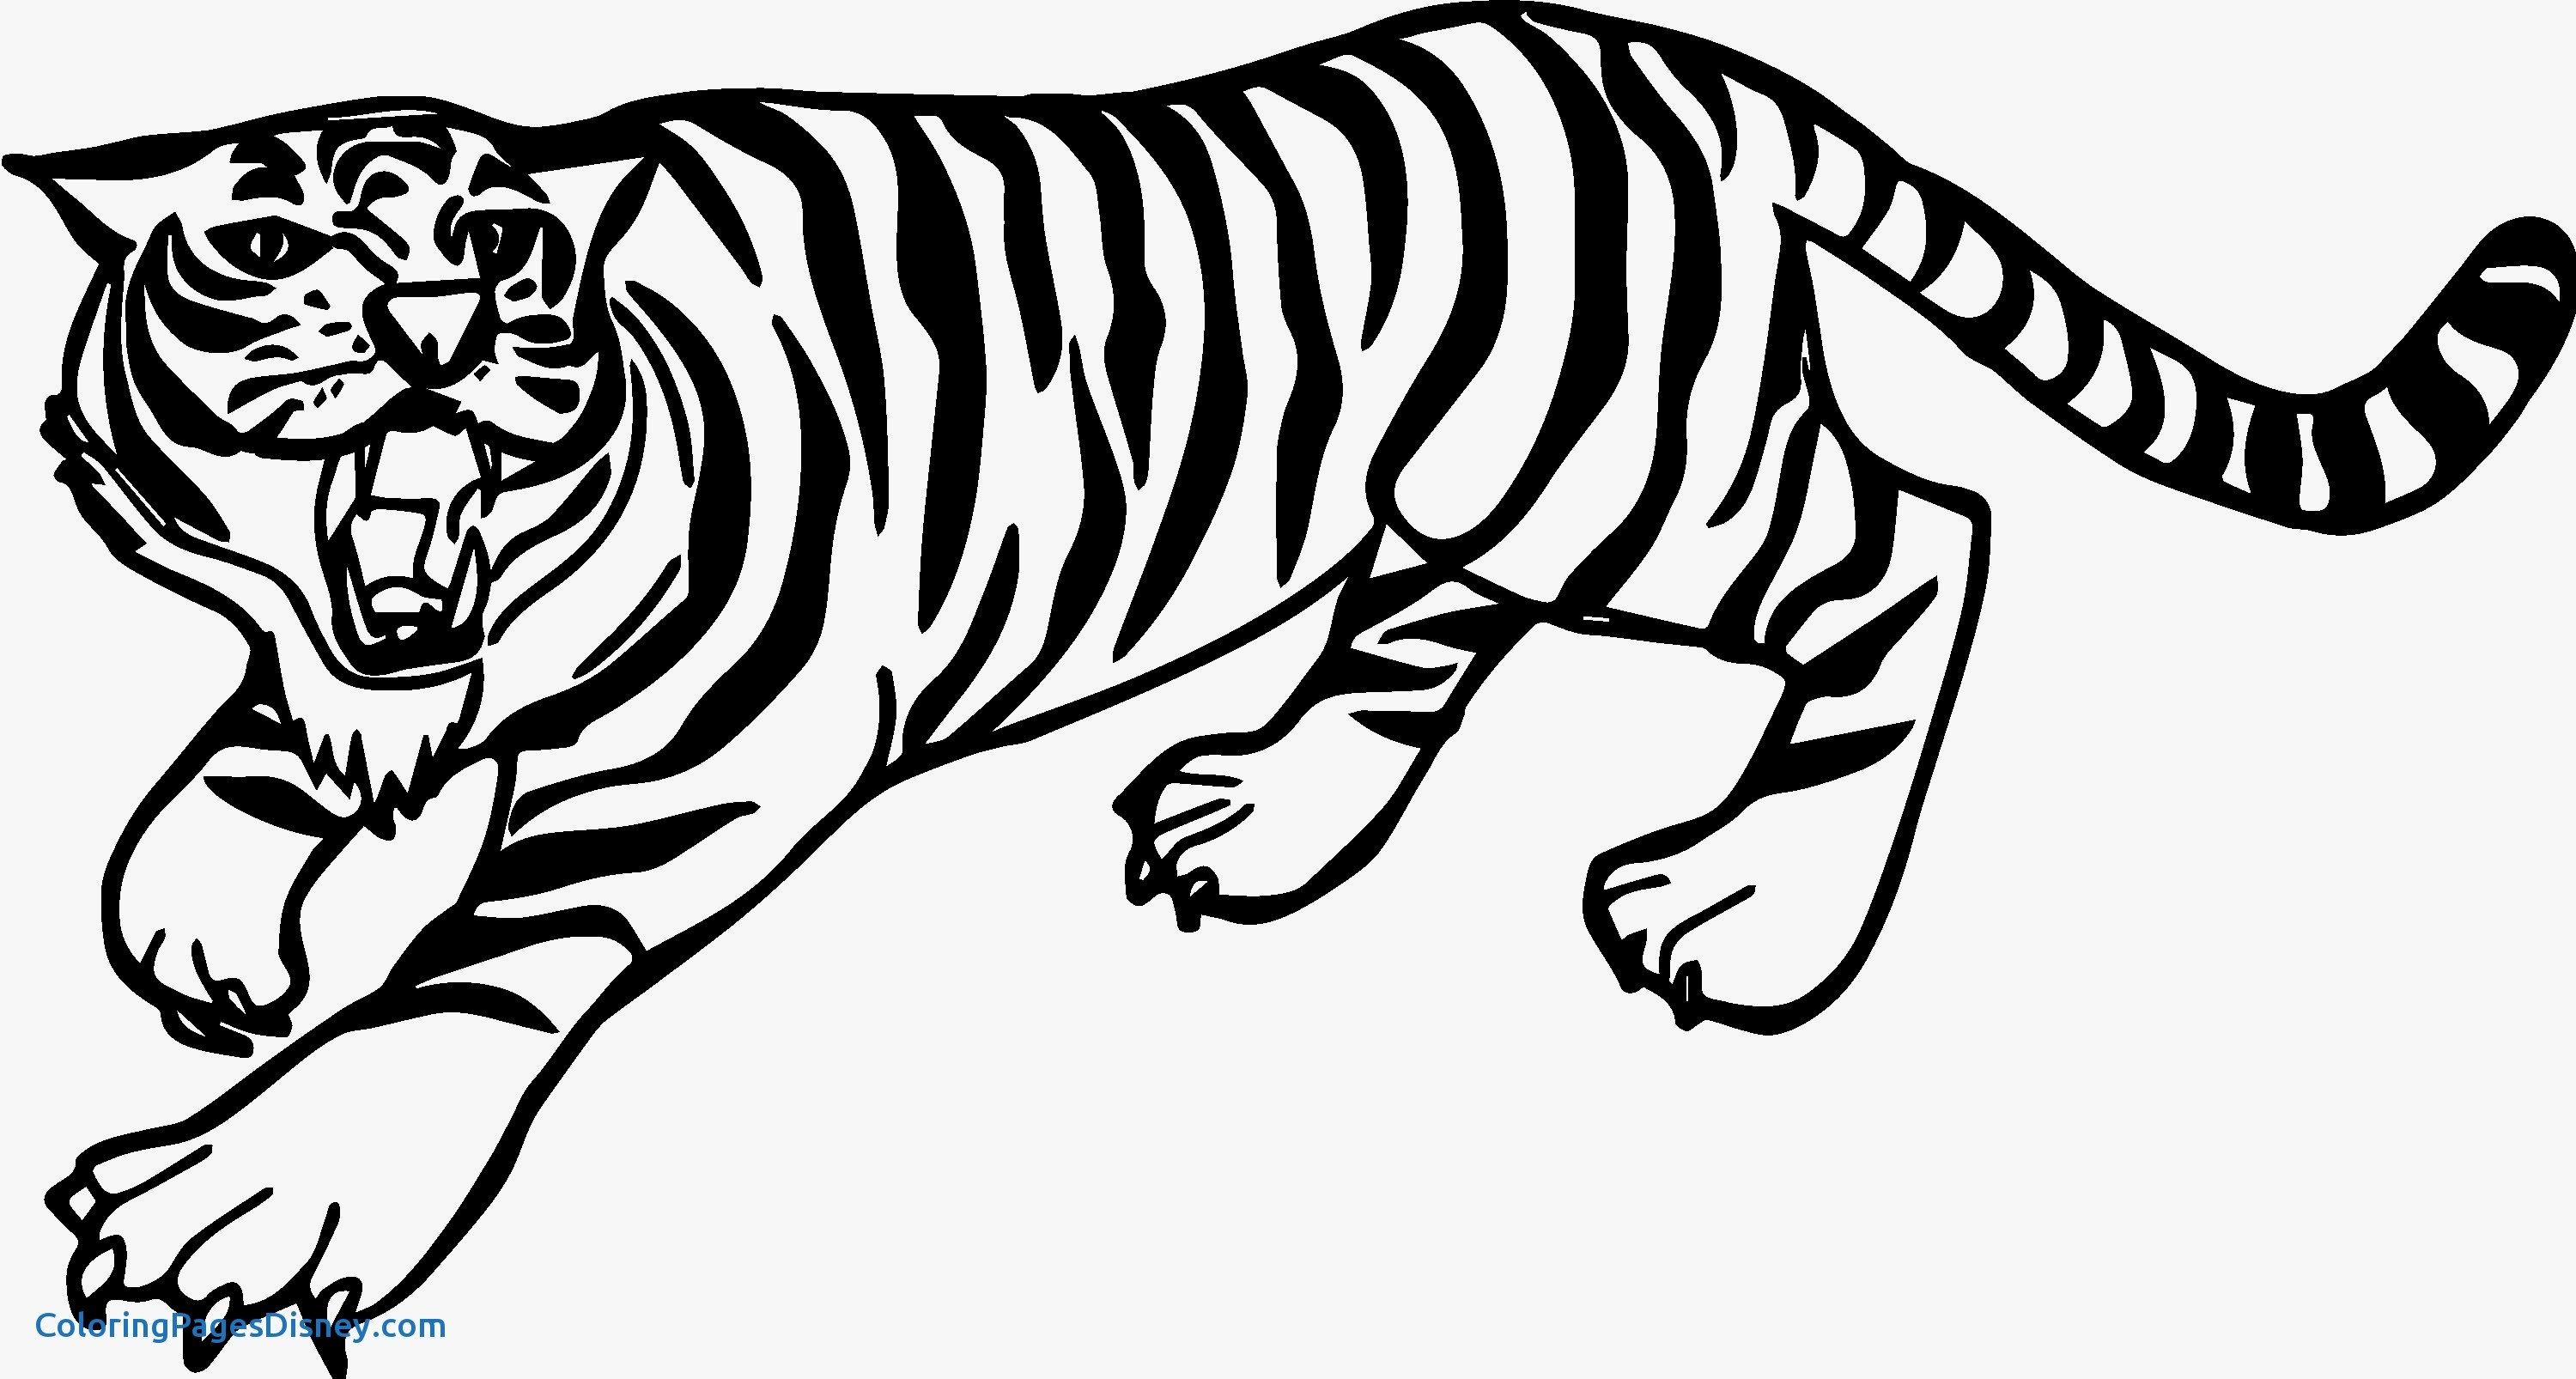 Saber Tooth Tiger Drawing | Free download on ClipArtMag